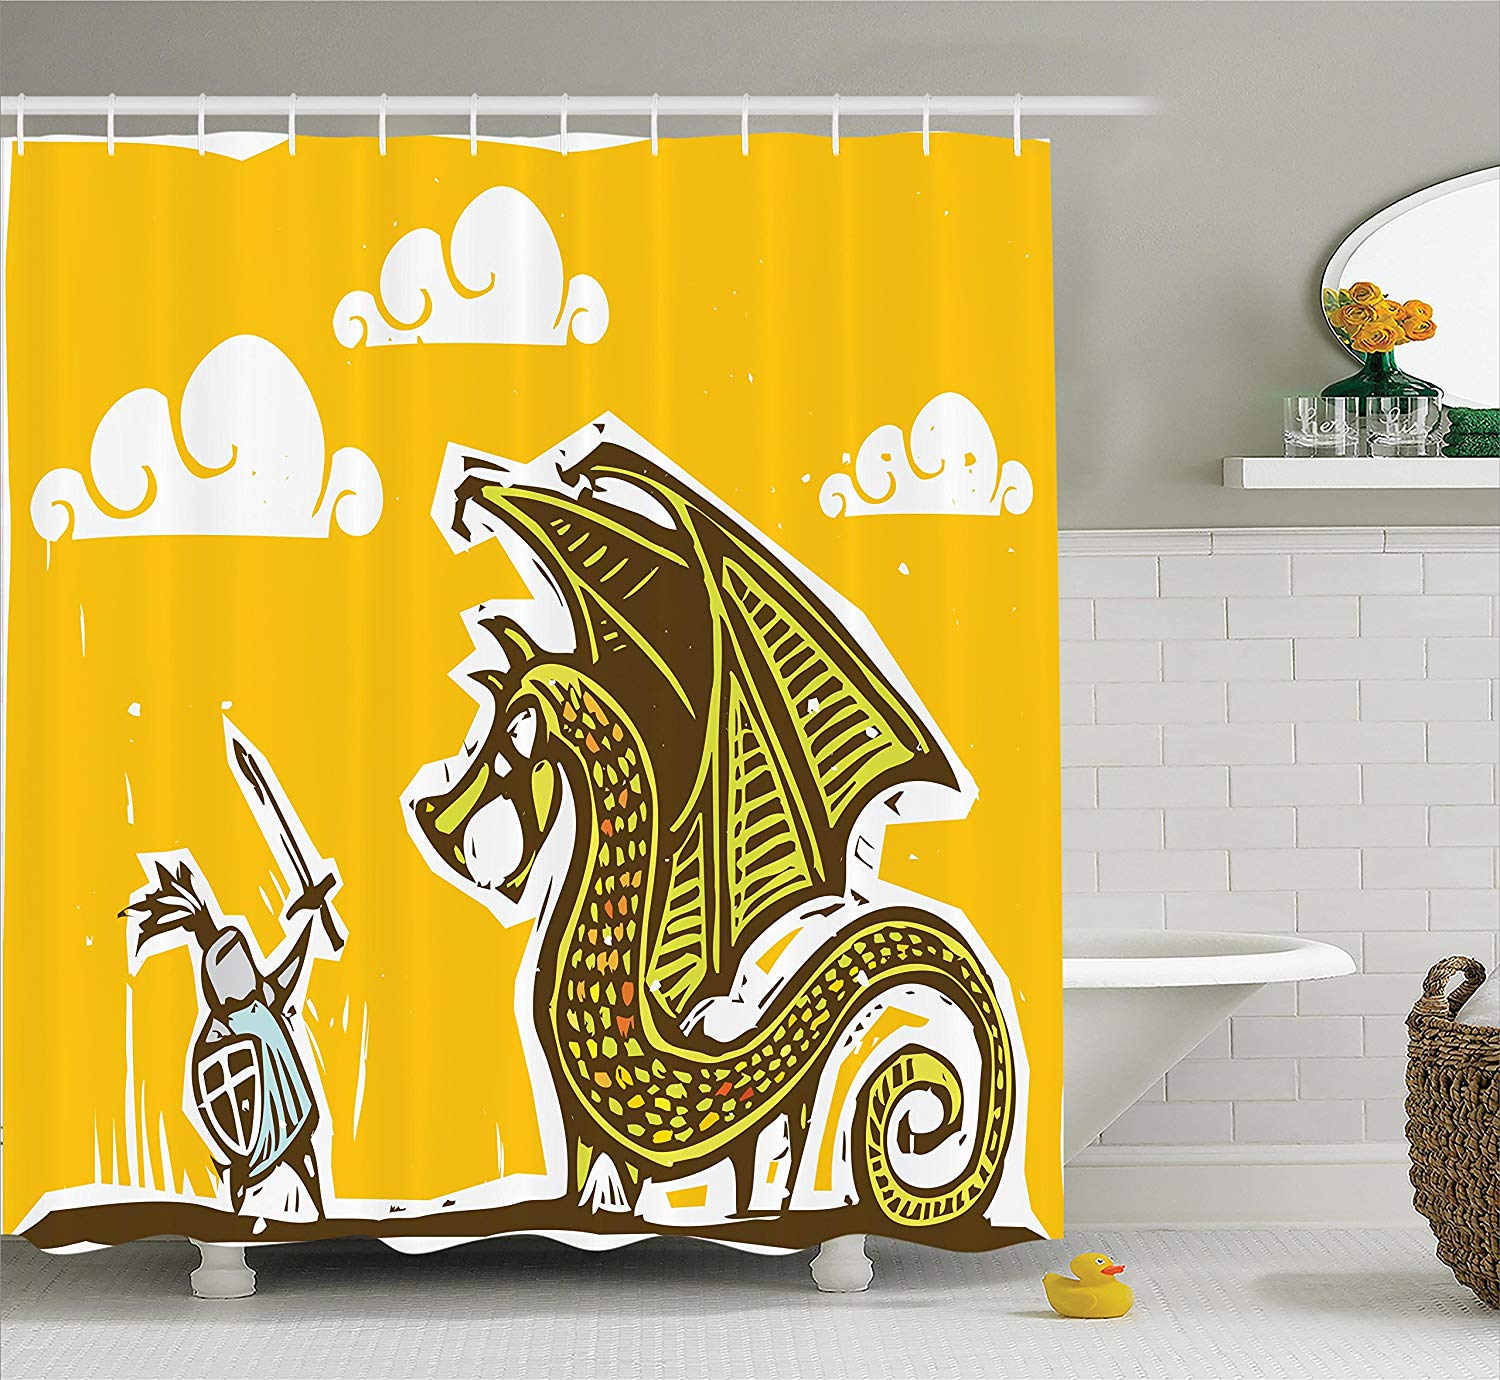 Shower Curtains That Open In The Middle.Funny Shower Curtain Warrior Against Dragon With Wings